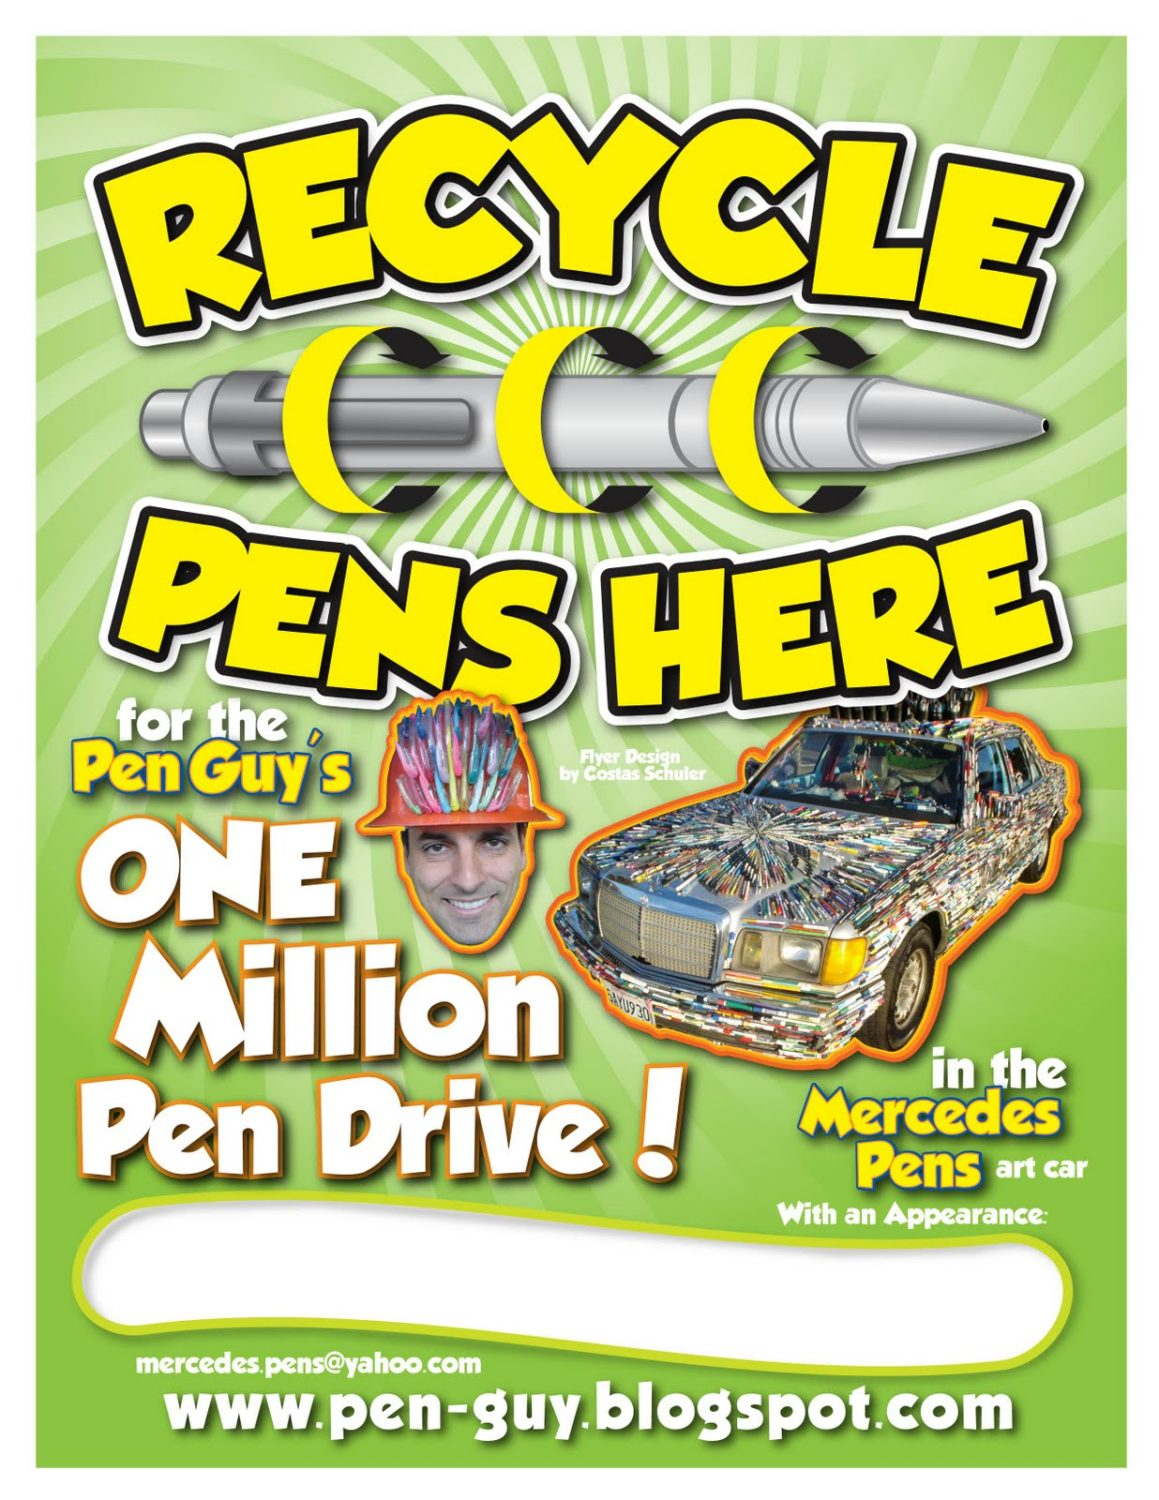 The Pen Guy Recycle Pens Flyer Design by Costas Schuler